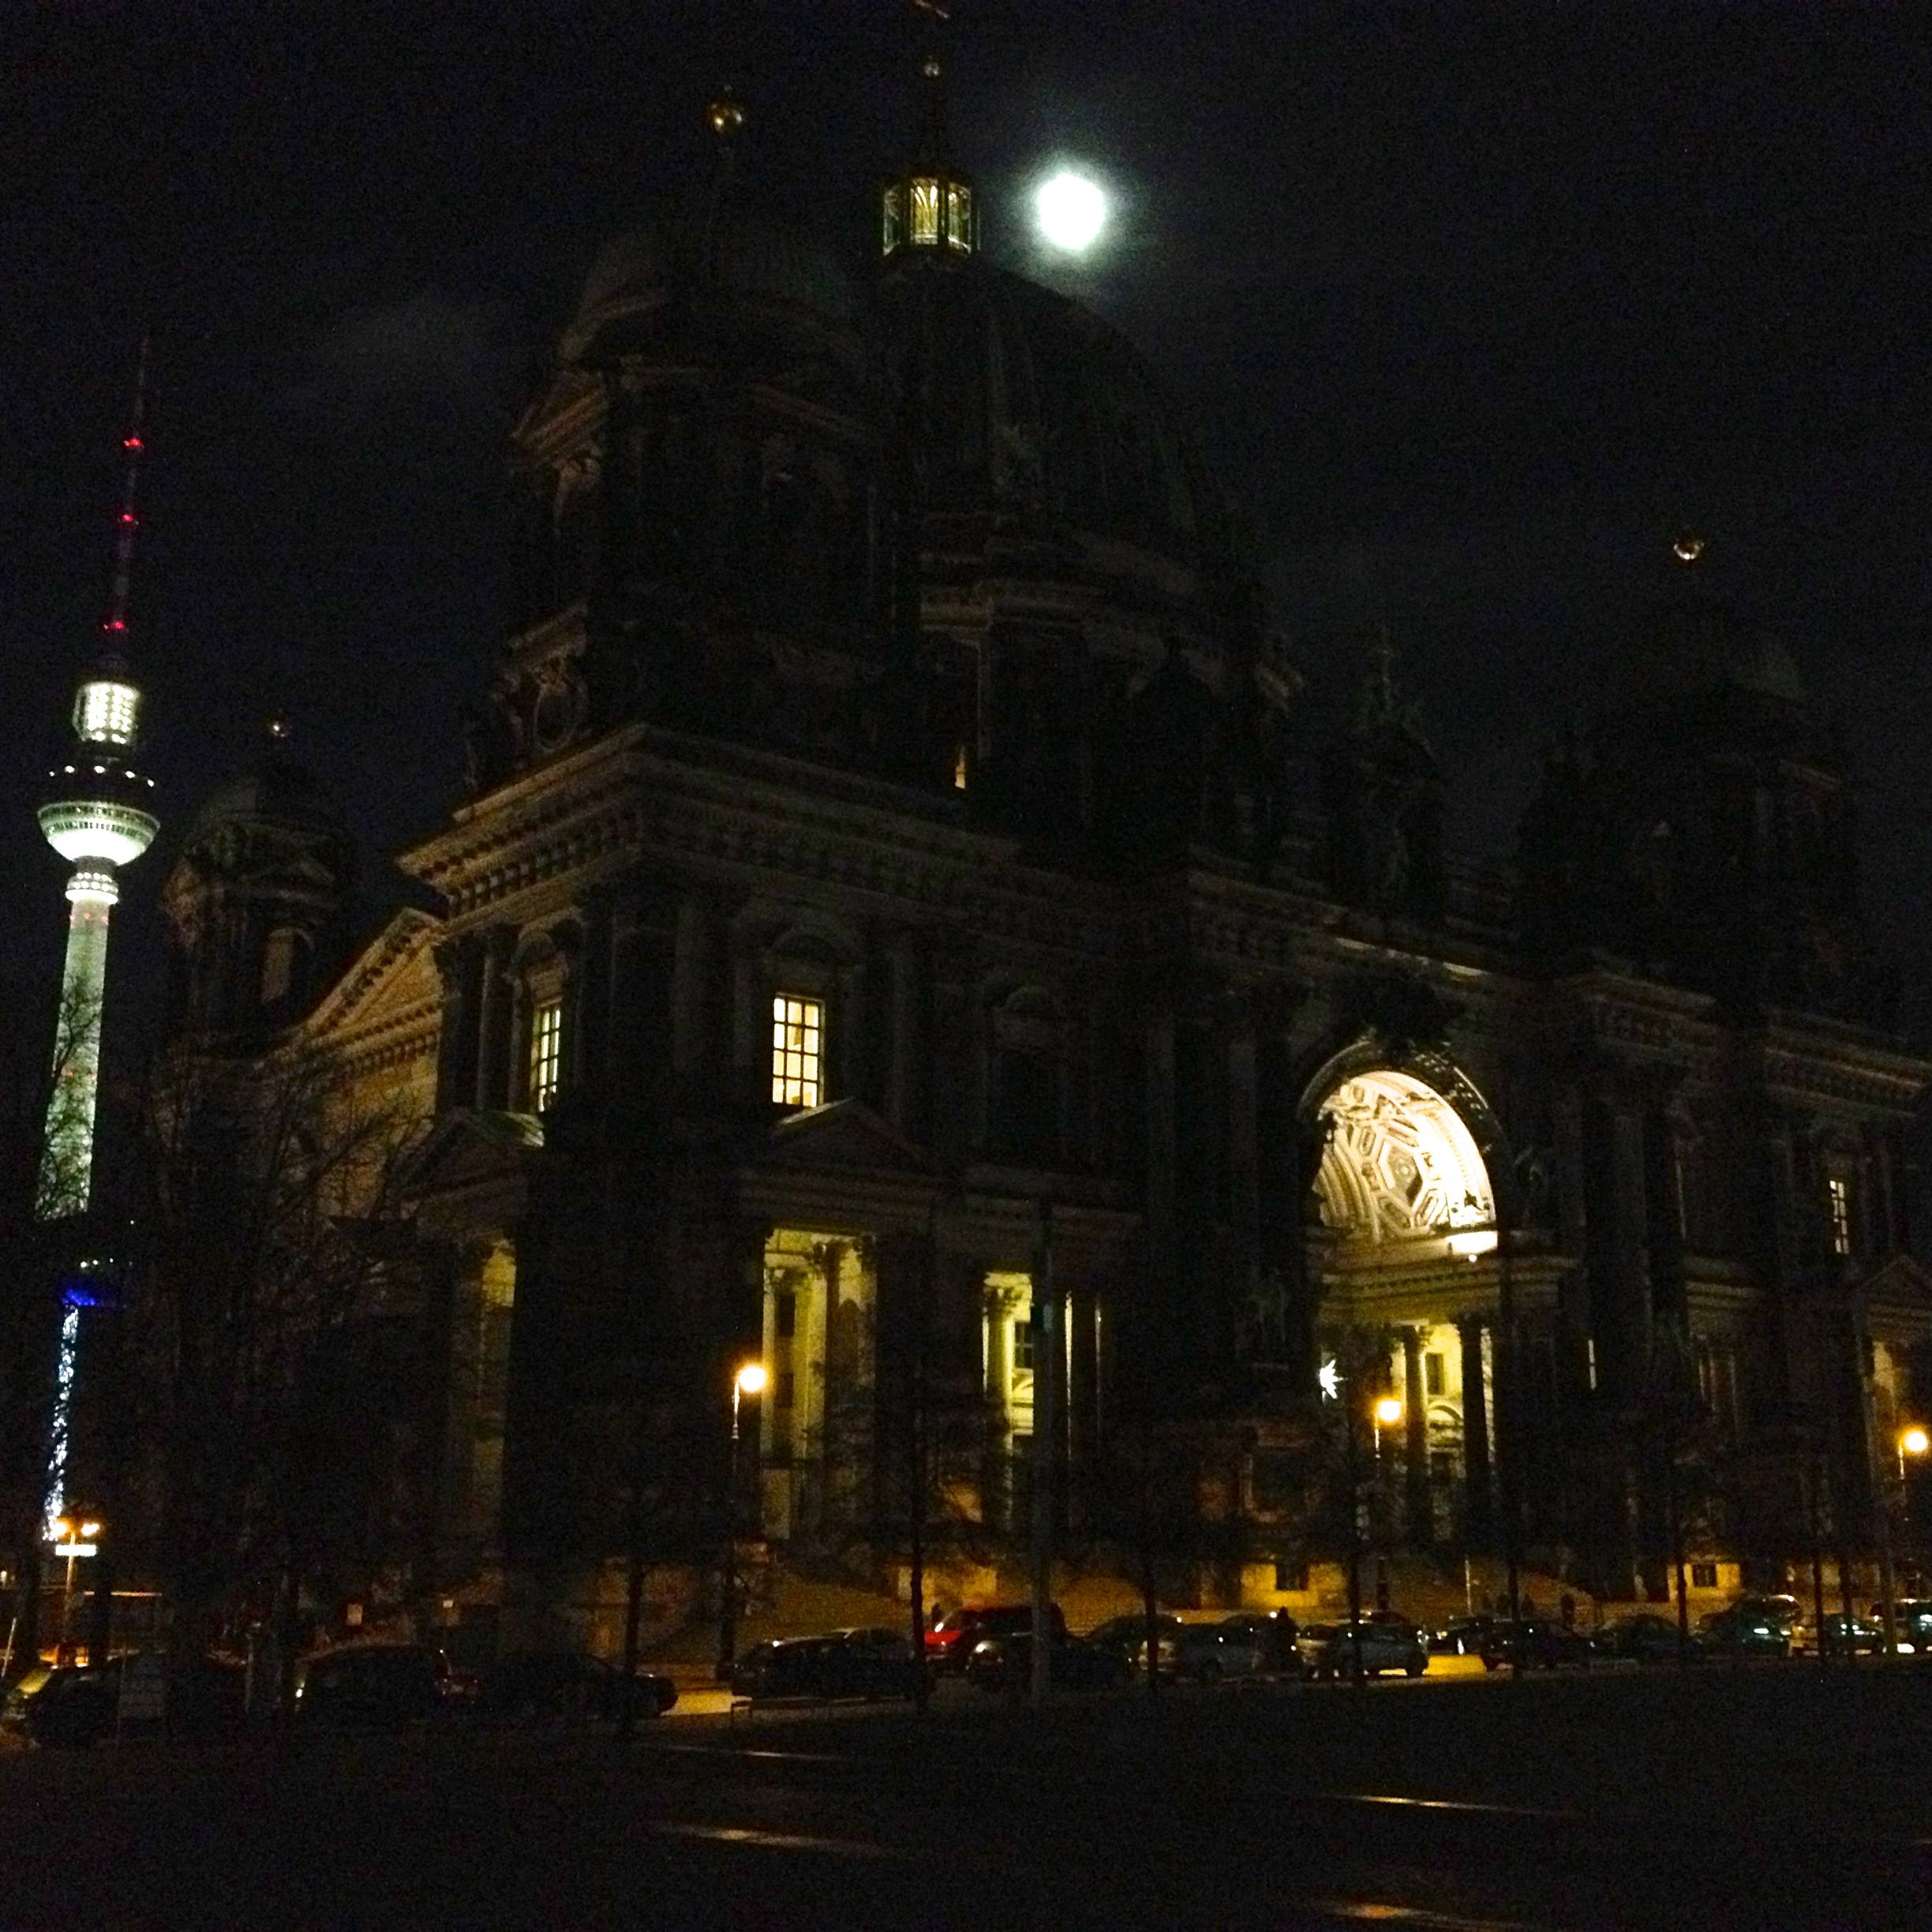 Full moon, behind the cathedral